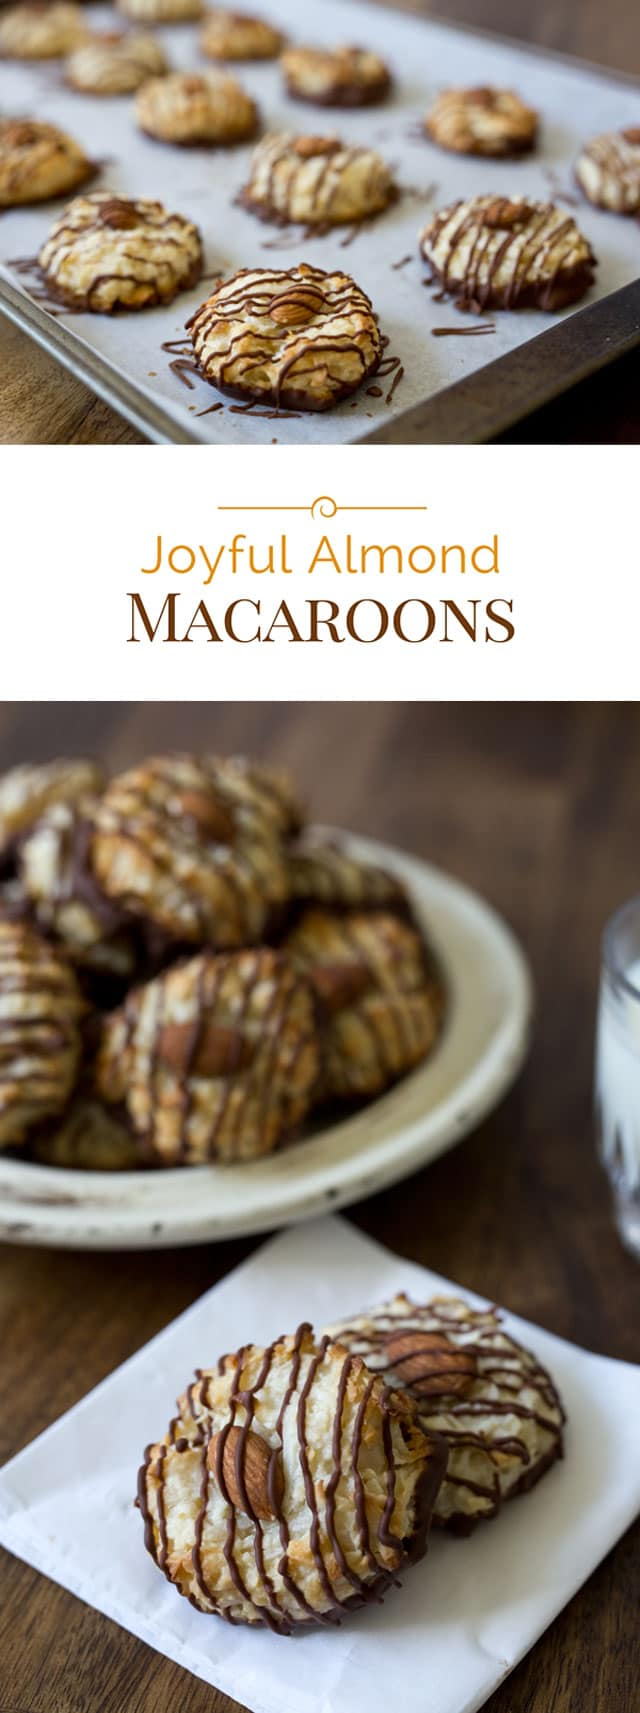 Joyful-Almond-Macaroons-Collage-2-Barbara-Bakes